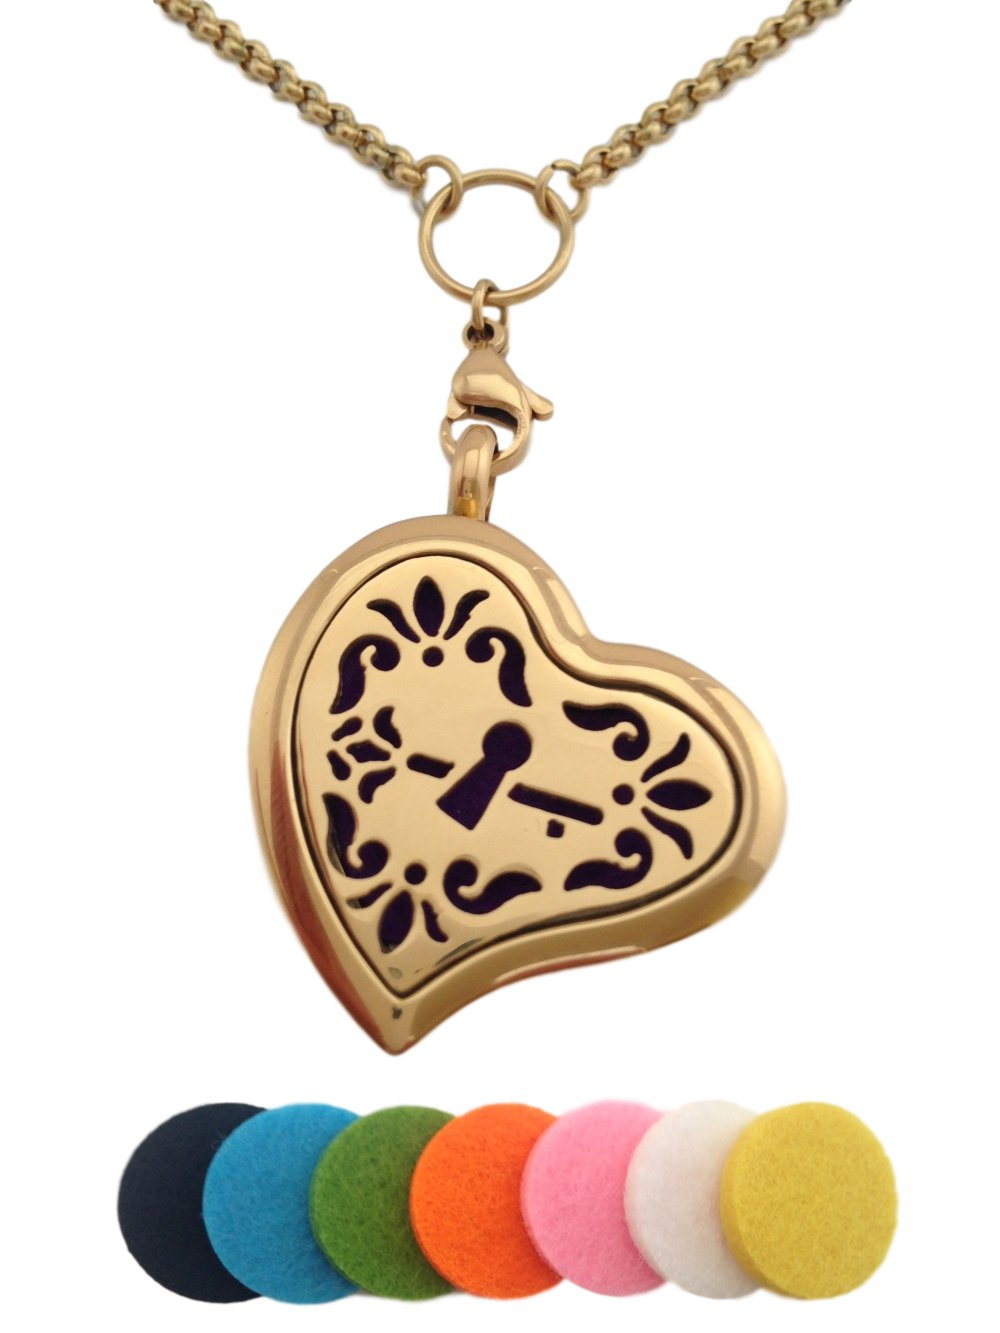 Essential Oil Diffuser Aromatherapy 24K Gold Plated Heart Pendant Necklace Locket